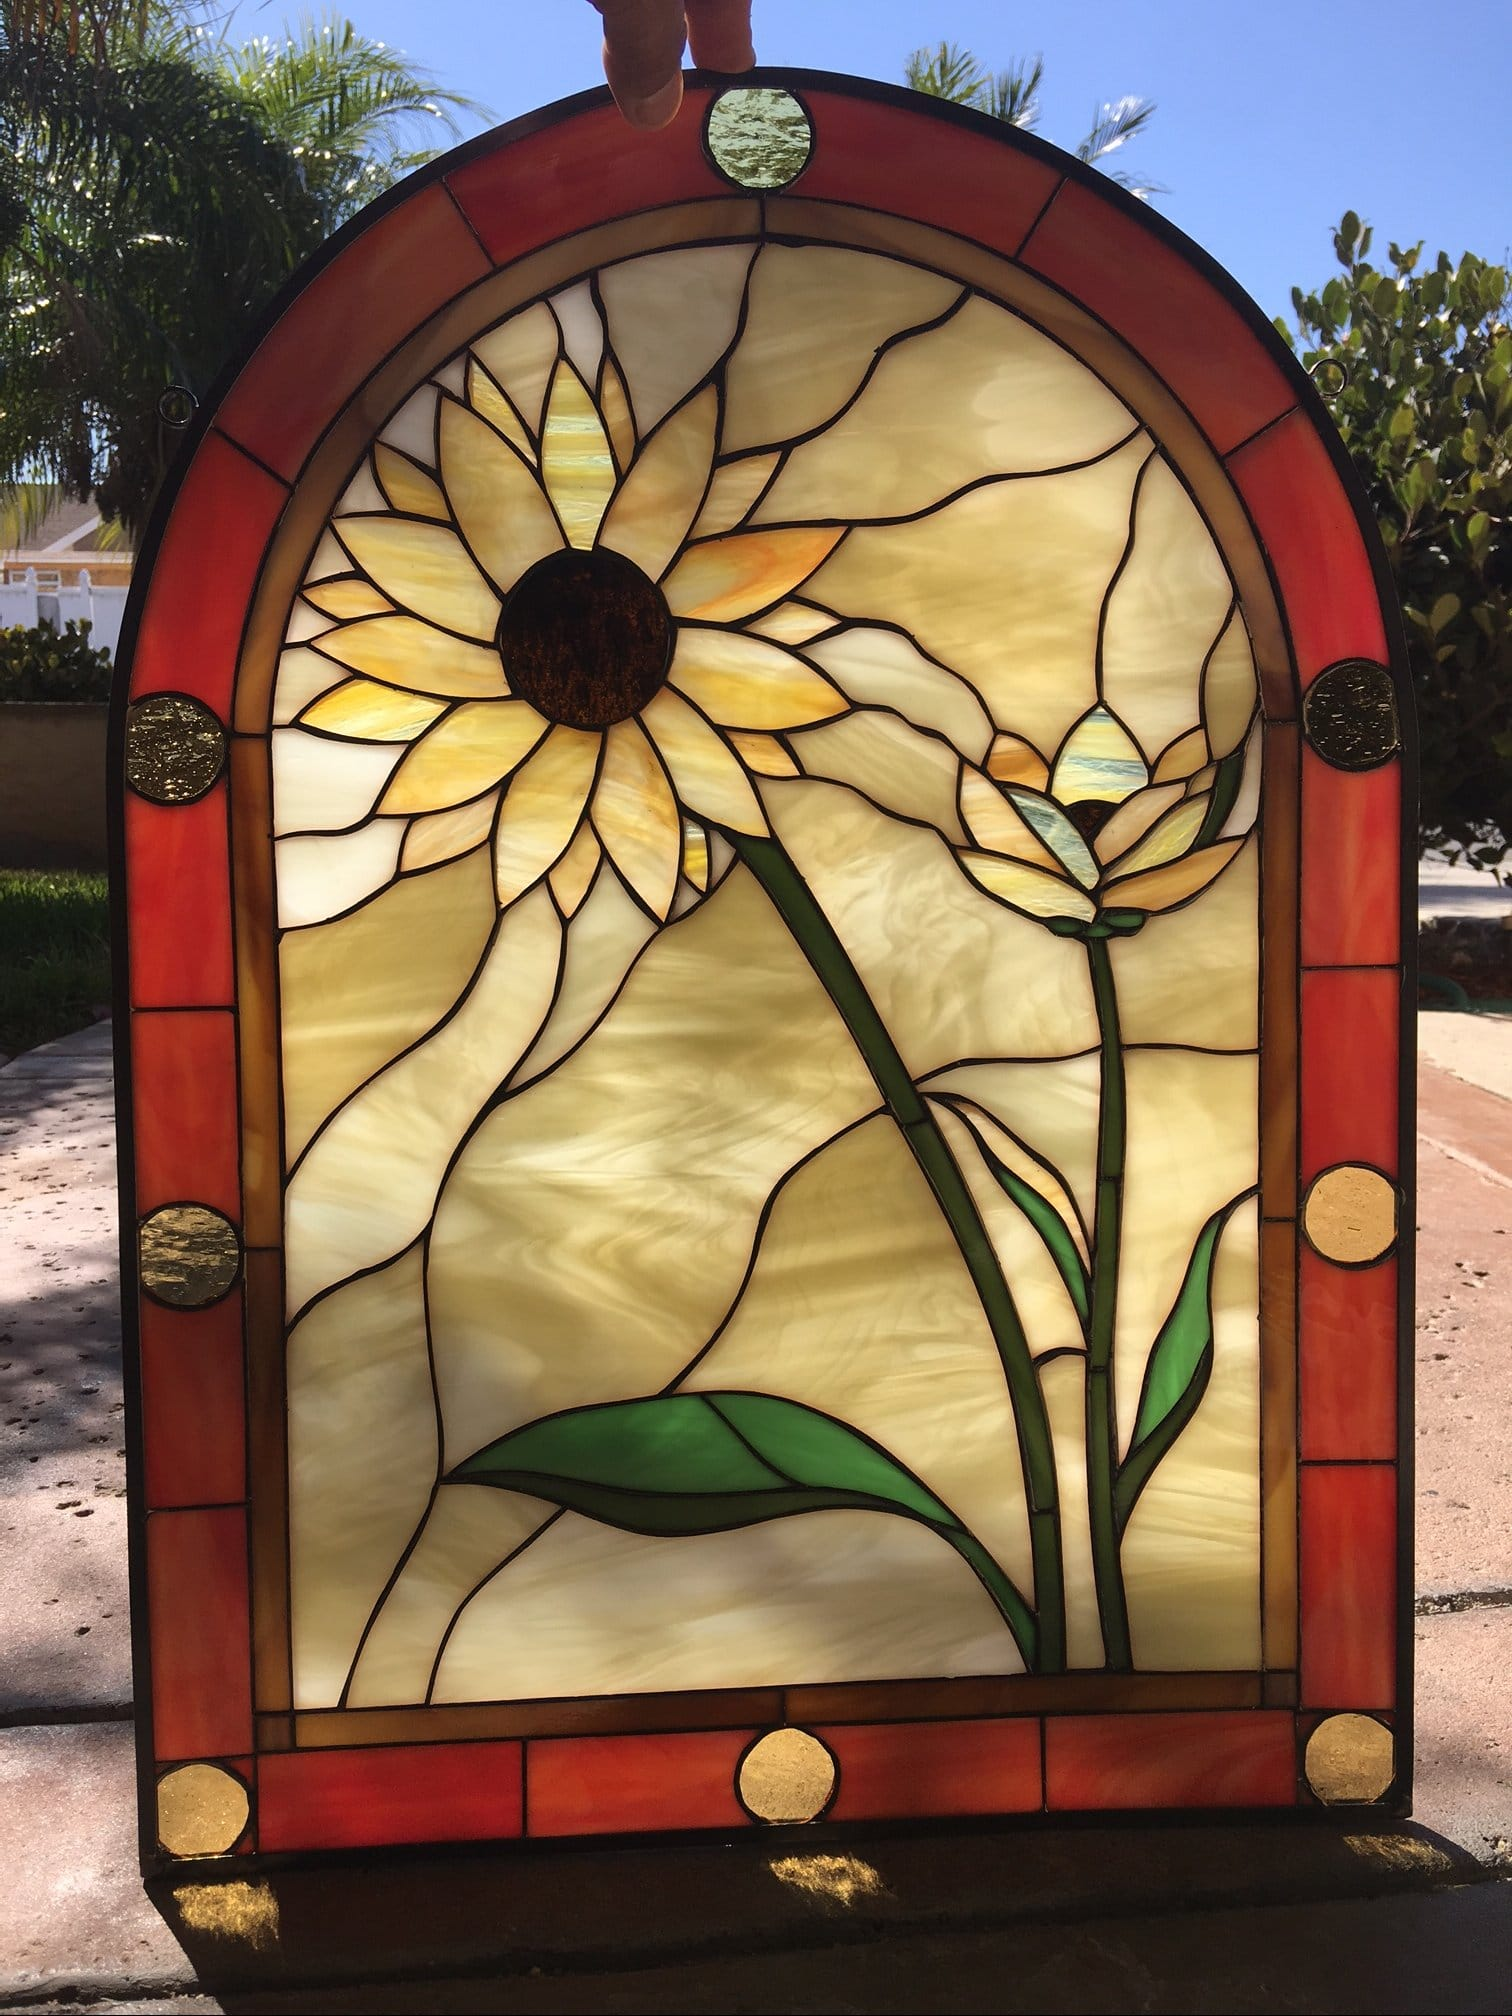 The Quot Sunflower Duo Quot Arched Leaded Stained Glass Window